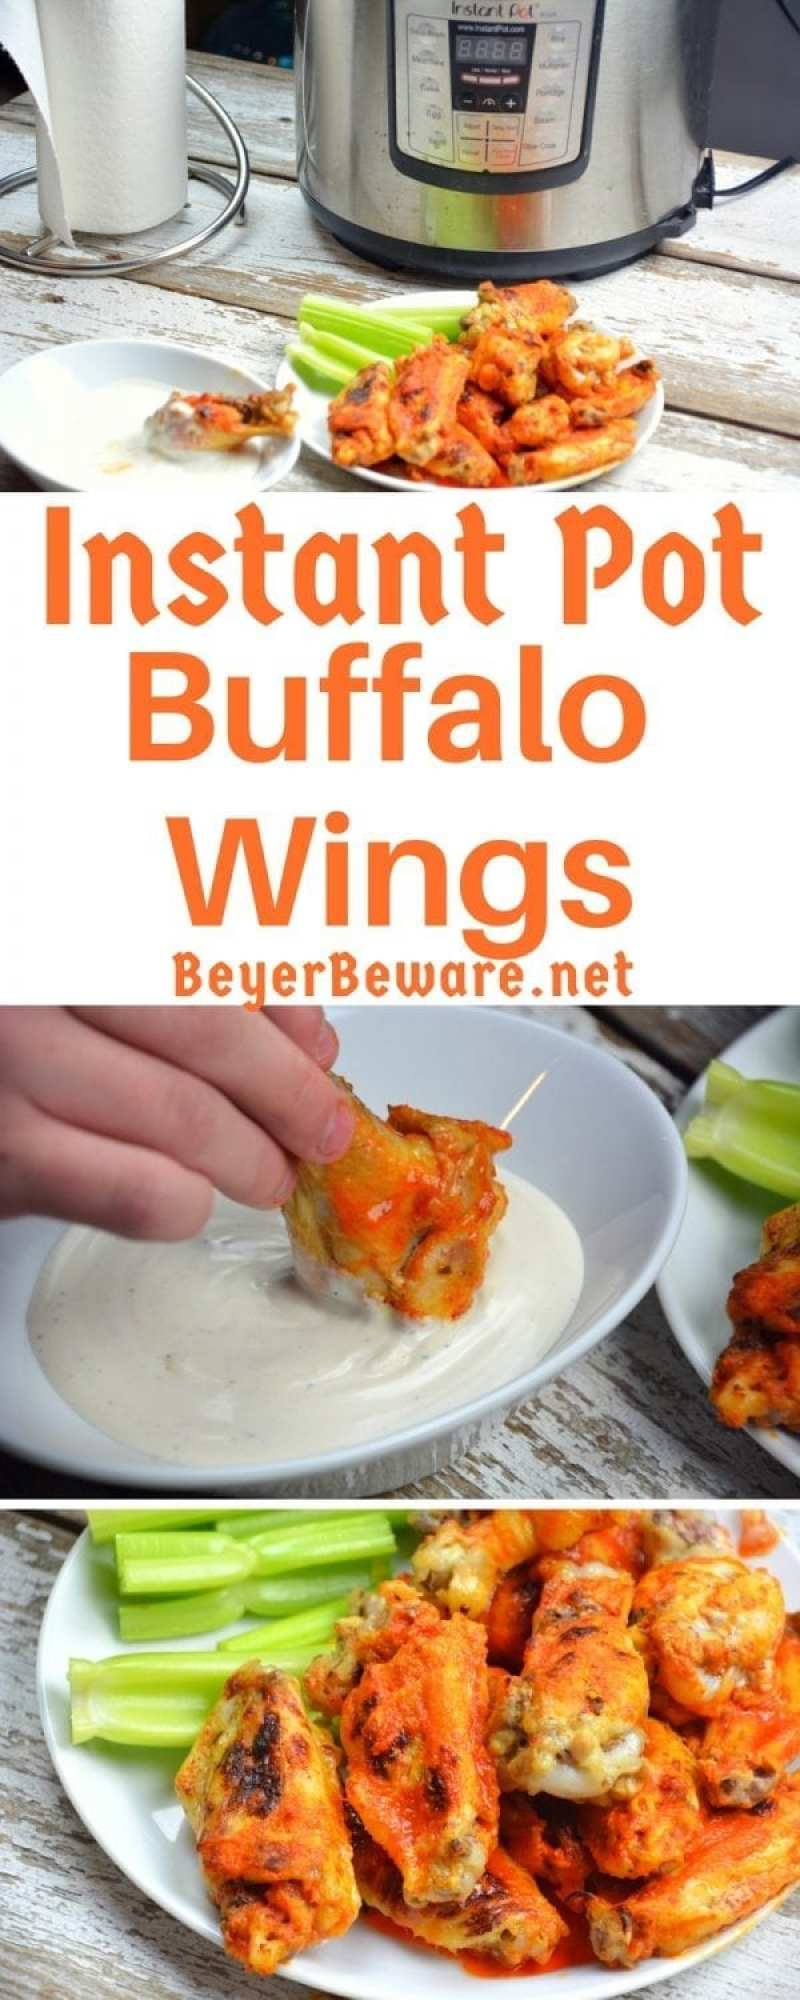 These Instant Pot Buffalo wings were quick to make chicken buffalo wings yet resulted in fall of the bone tenderness all while being drenched in an easy butter and Franks hot sauce buffalo sauce.